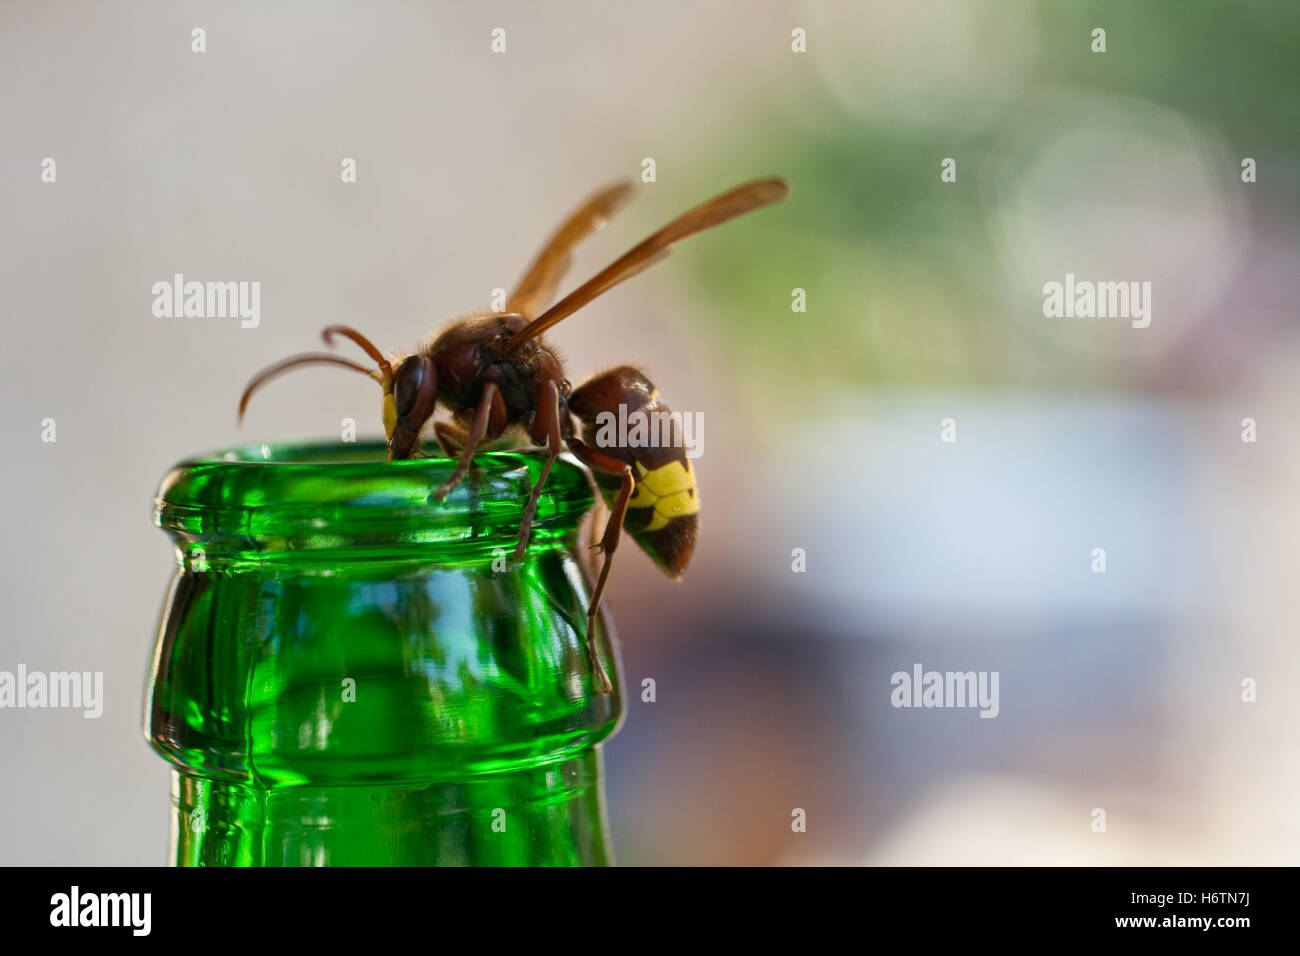 insects spiders - Stock Image